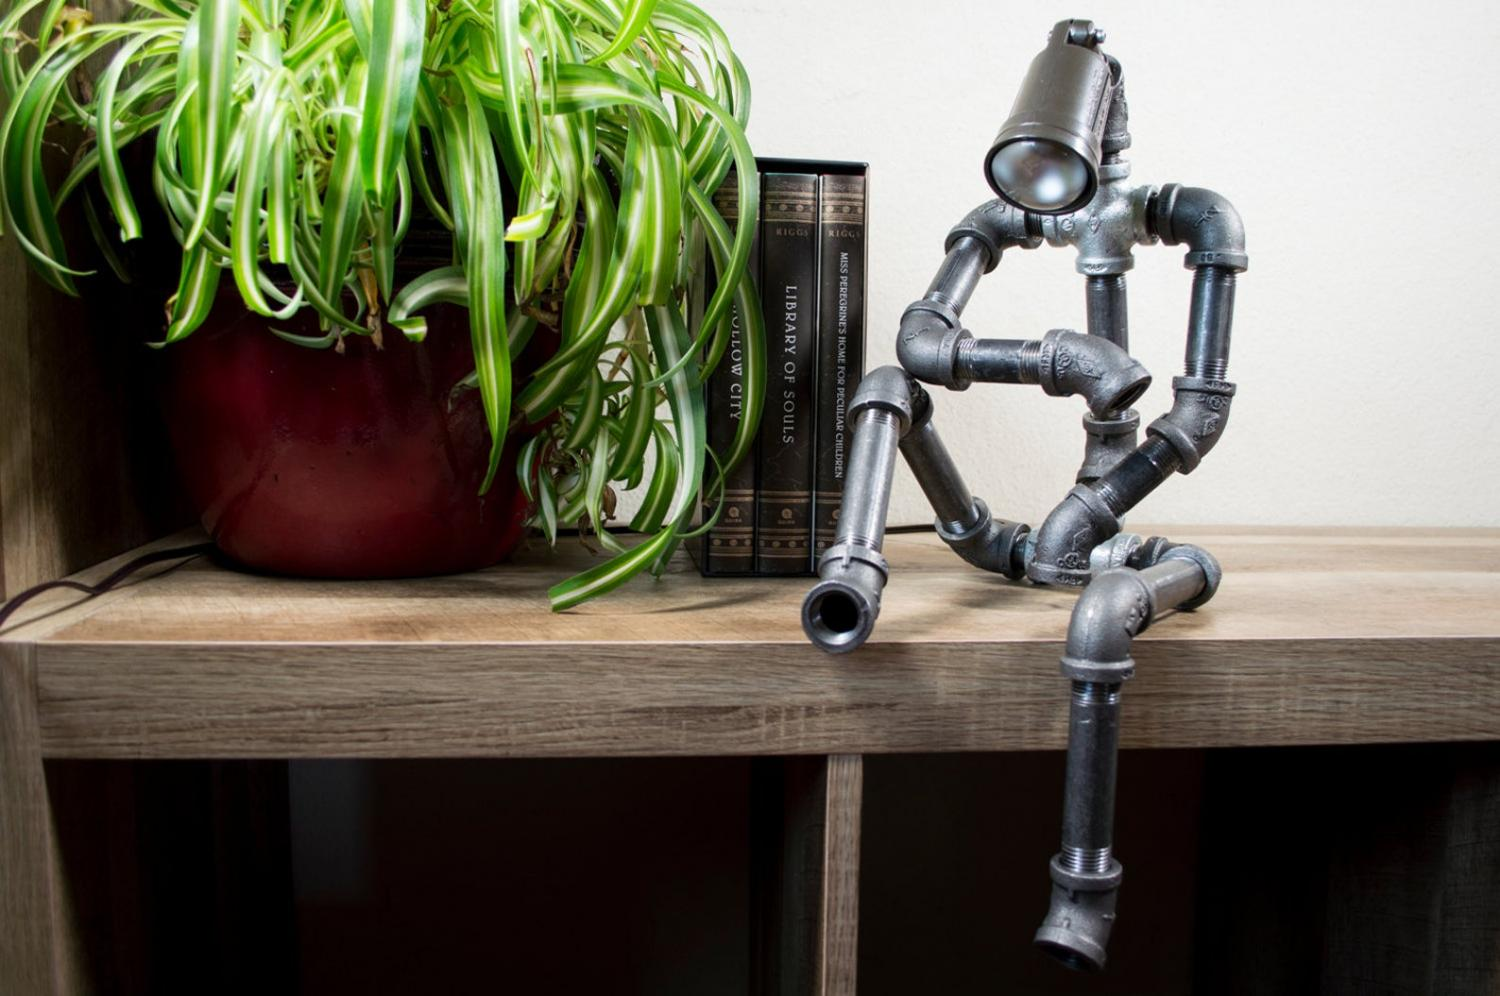 Sitting Pipe Robot Lamp - Industrial design thinking pipe man with lamp for head